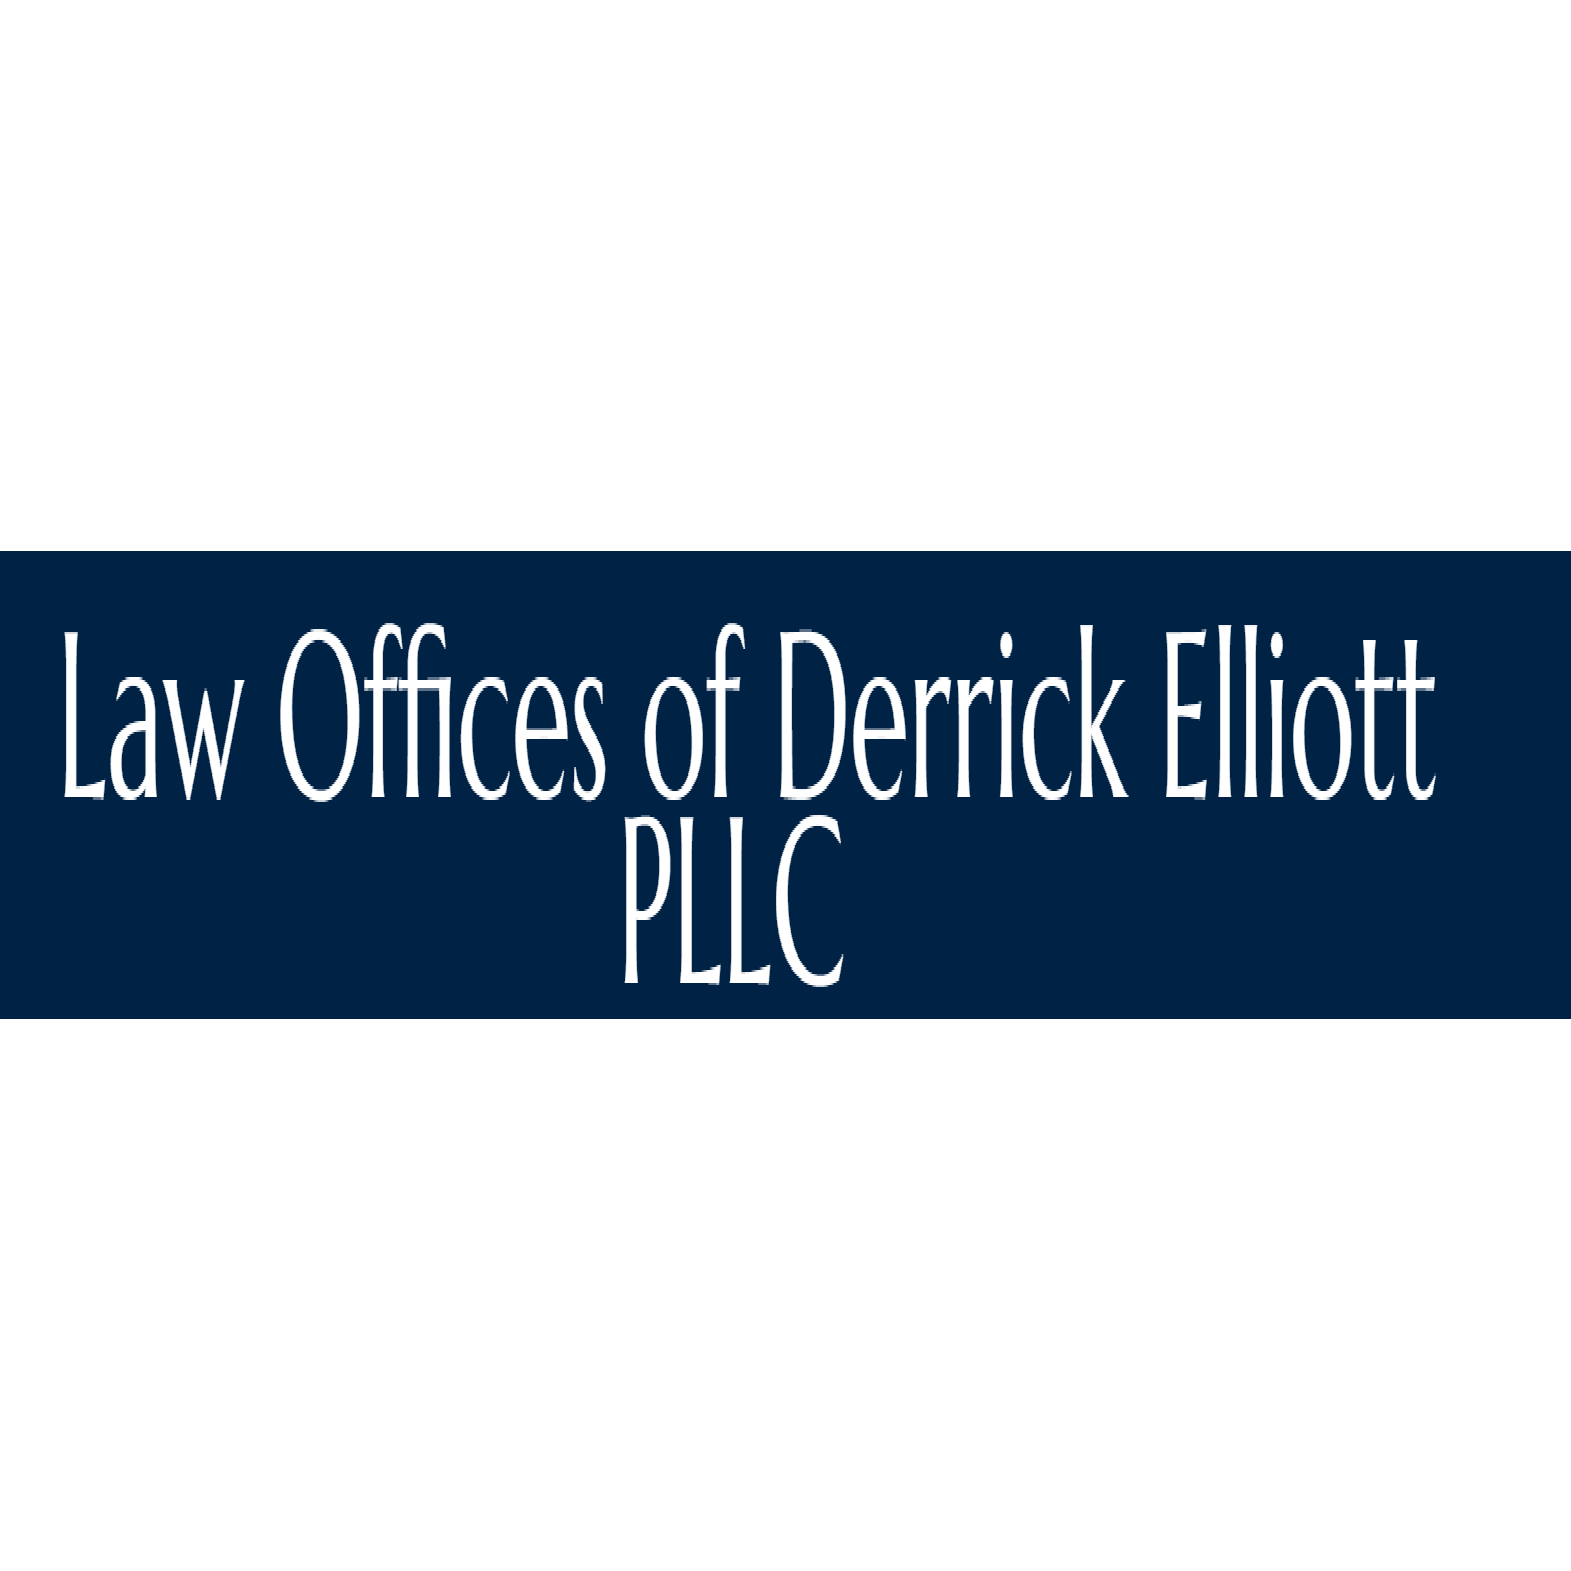 image of Law Offices of Derrick Elliott, PLLC-